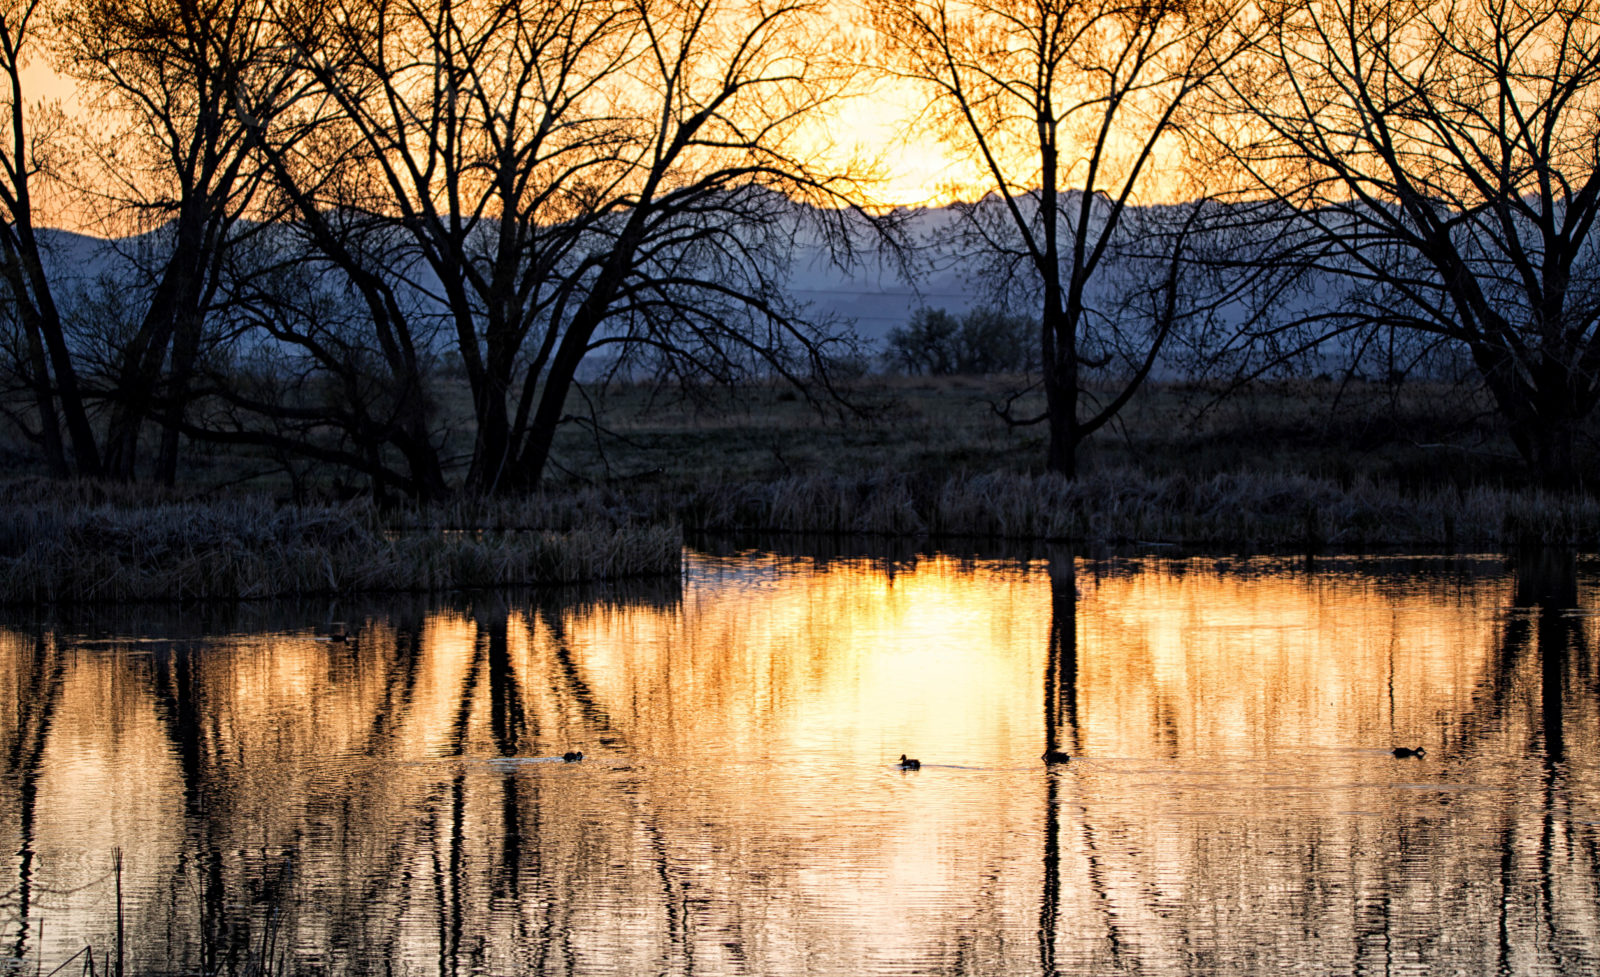 A Quiet Pond At Sunset